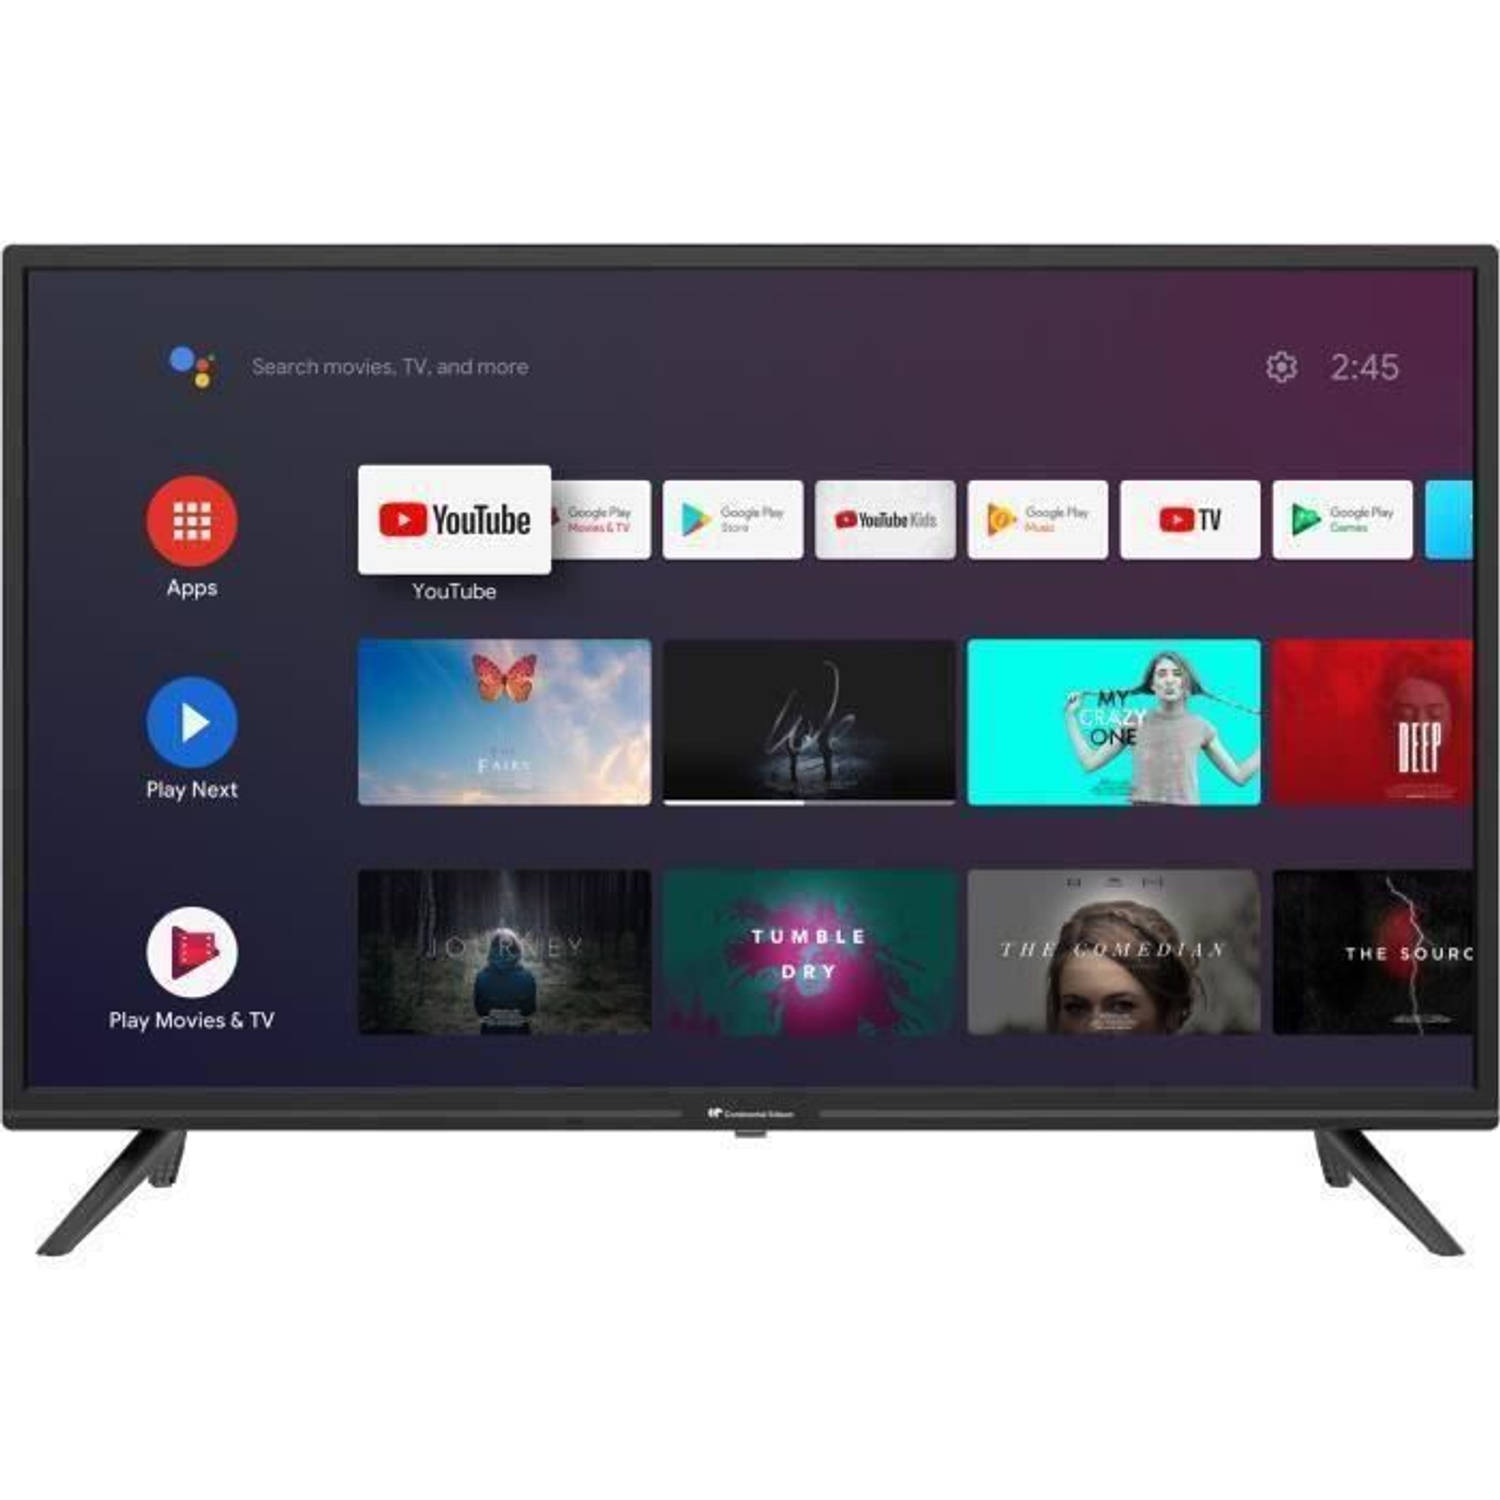 Continental Edison Android Hd Led Tv - 32 (80 Cm) - Wifi - Bluetooth - Hdmix3 - Usbx2 - Spraakbesturing